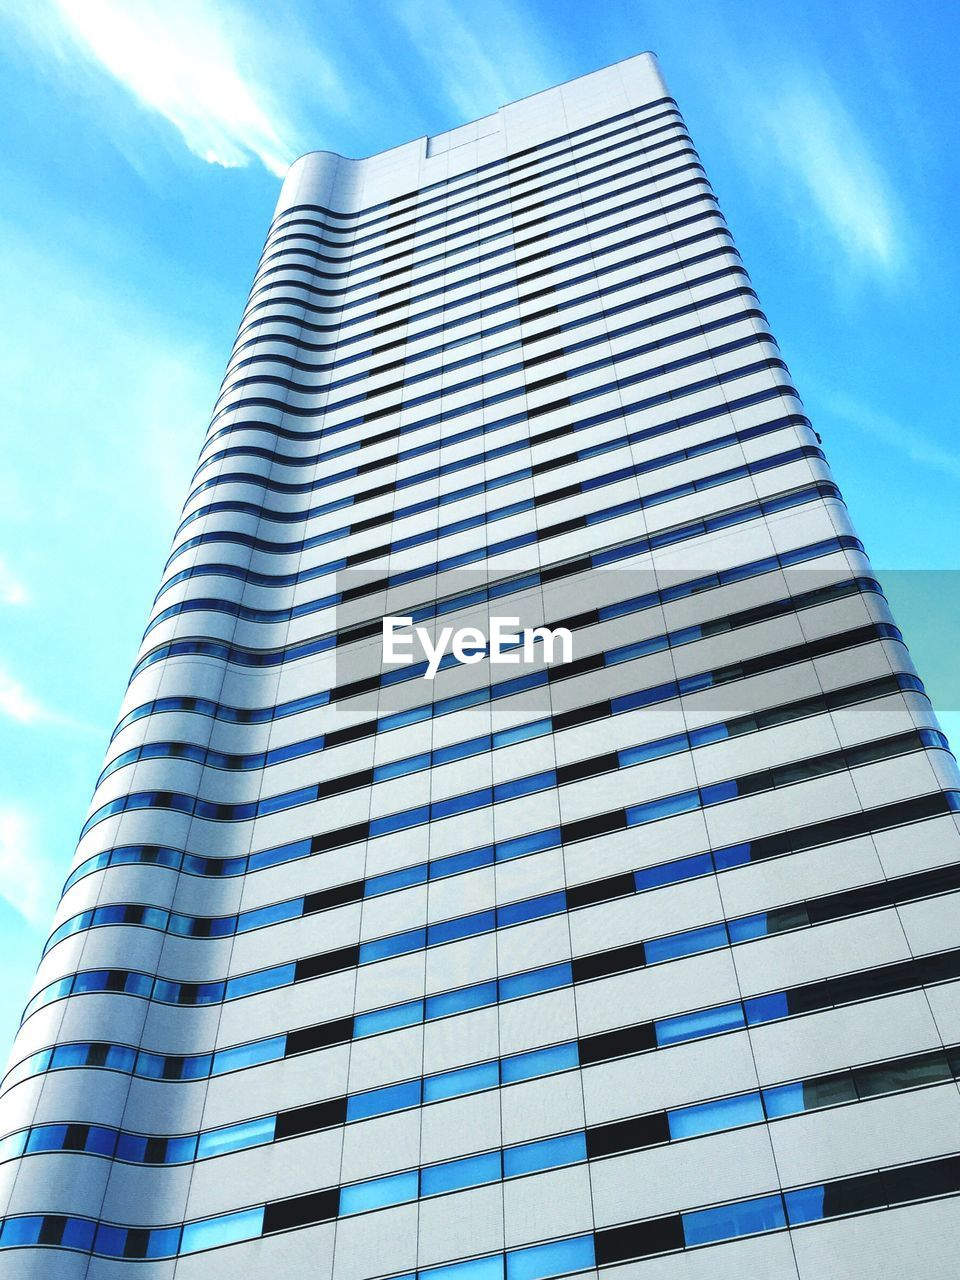 low angle view, architecture, sky, skyscraper, modern, building exterior, built structure, cloud - sky, day, outdoors, city, blue, no people